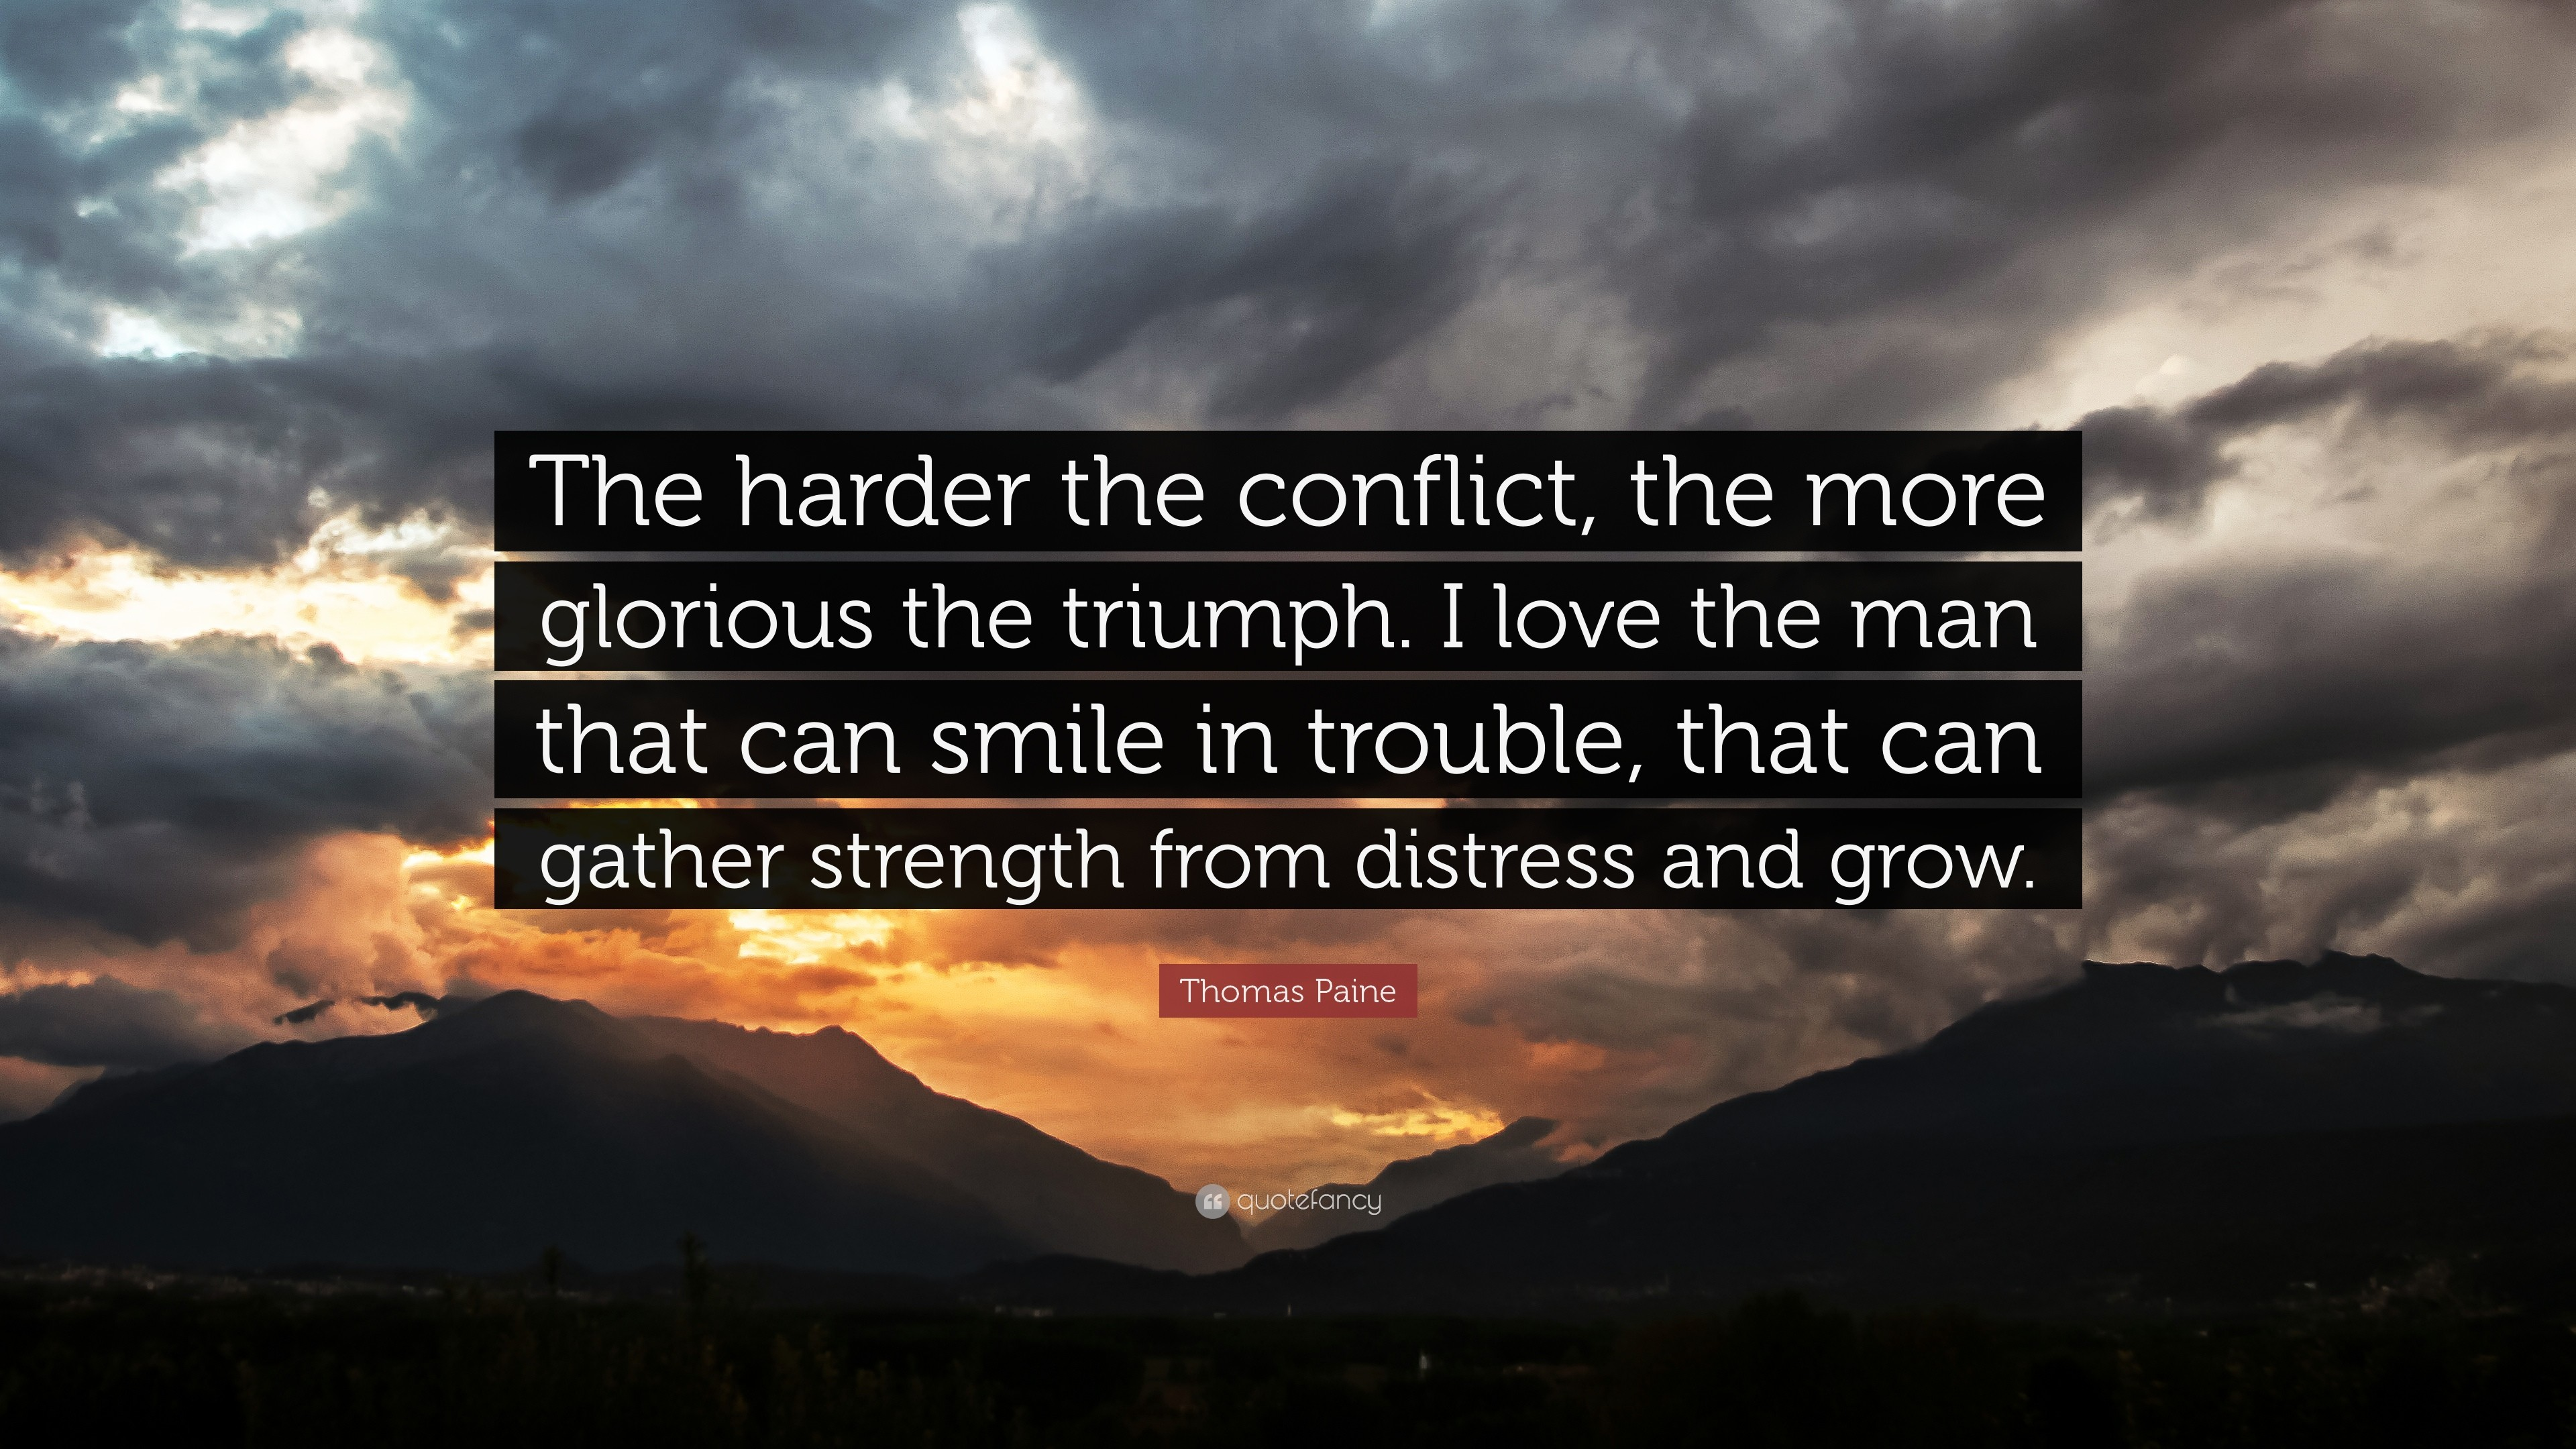 """Thomas Paine Quote: """"The harder the conflict, the more glorious the triumph."""